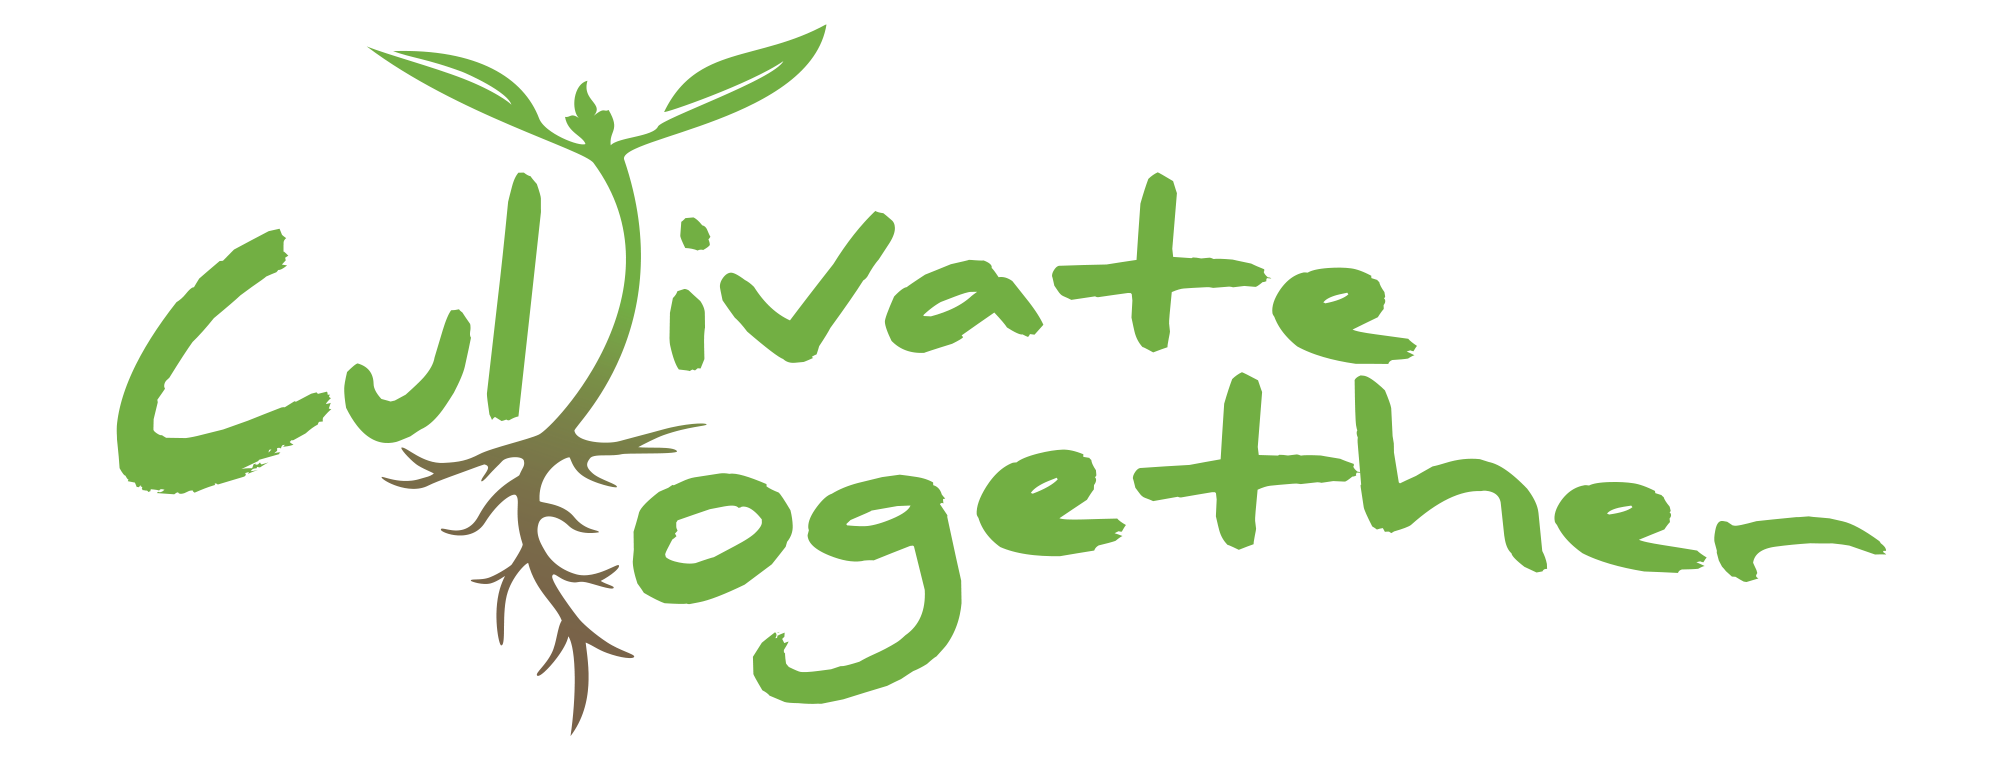 Cultivate Together